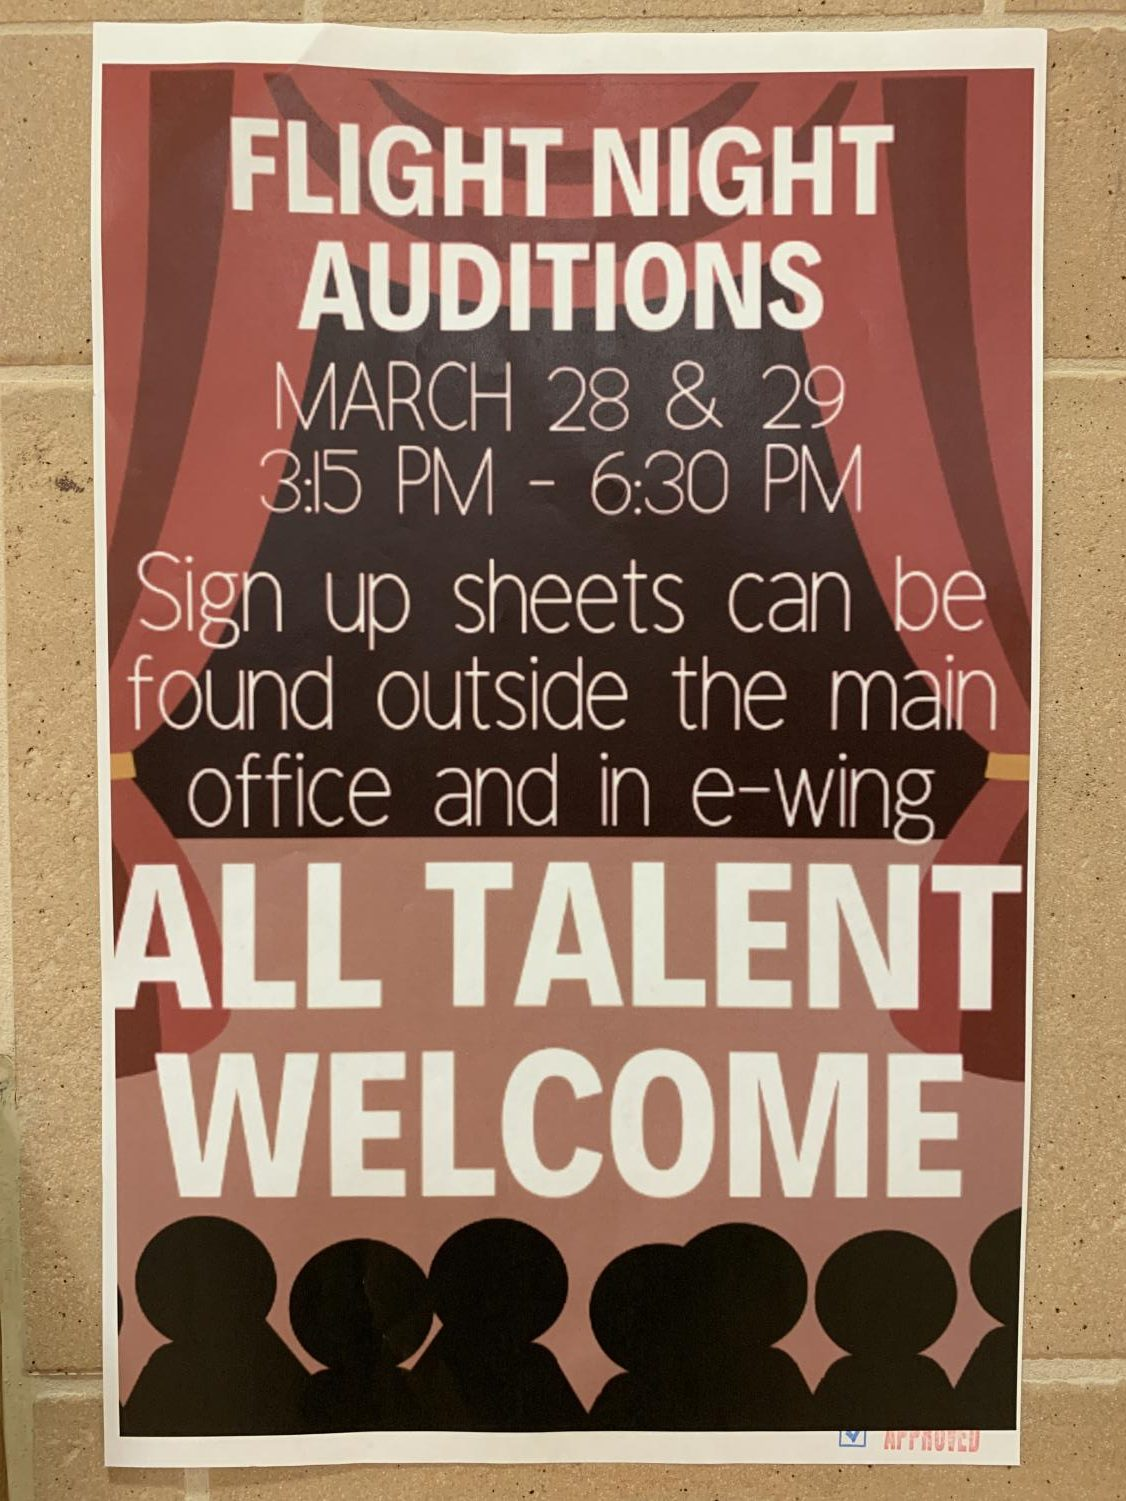 Flight Night auditions are held on March 28 and 29 at 3:15 p.m. to 6:30 p.m. in the auditorium. Students are encouraged to contribute their talents to the annual Flight Night auditions!